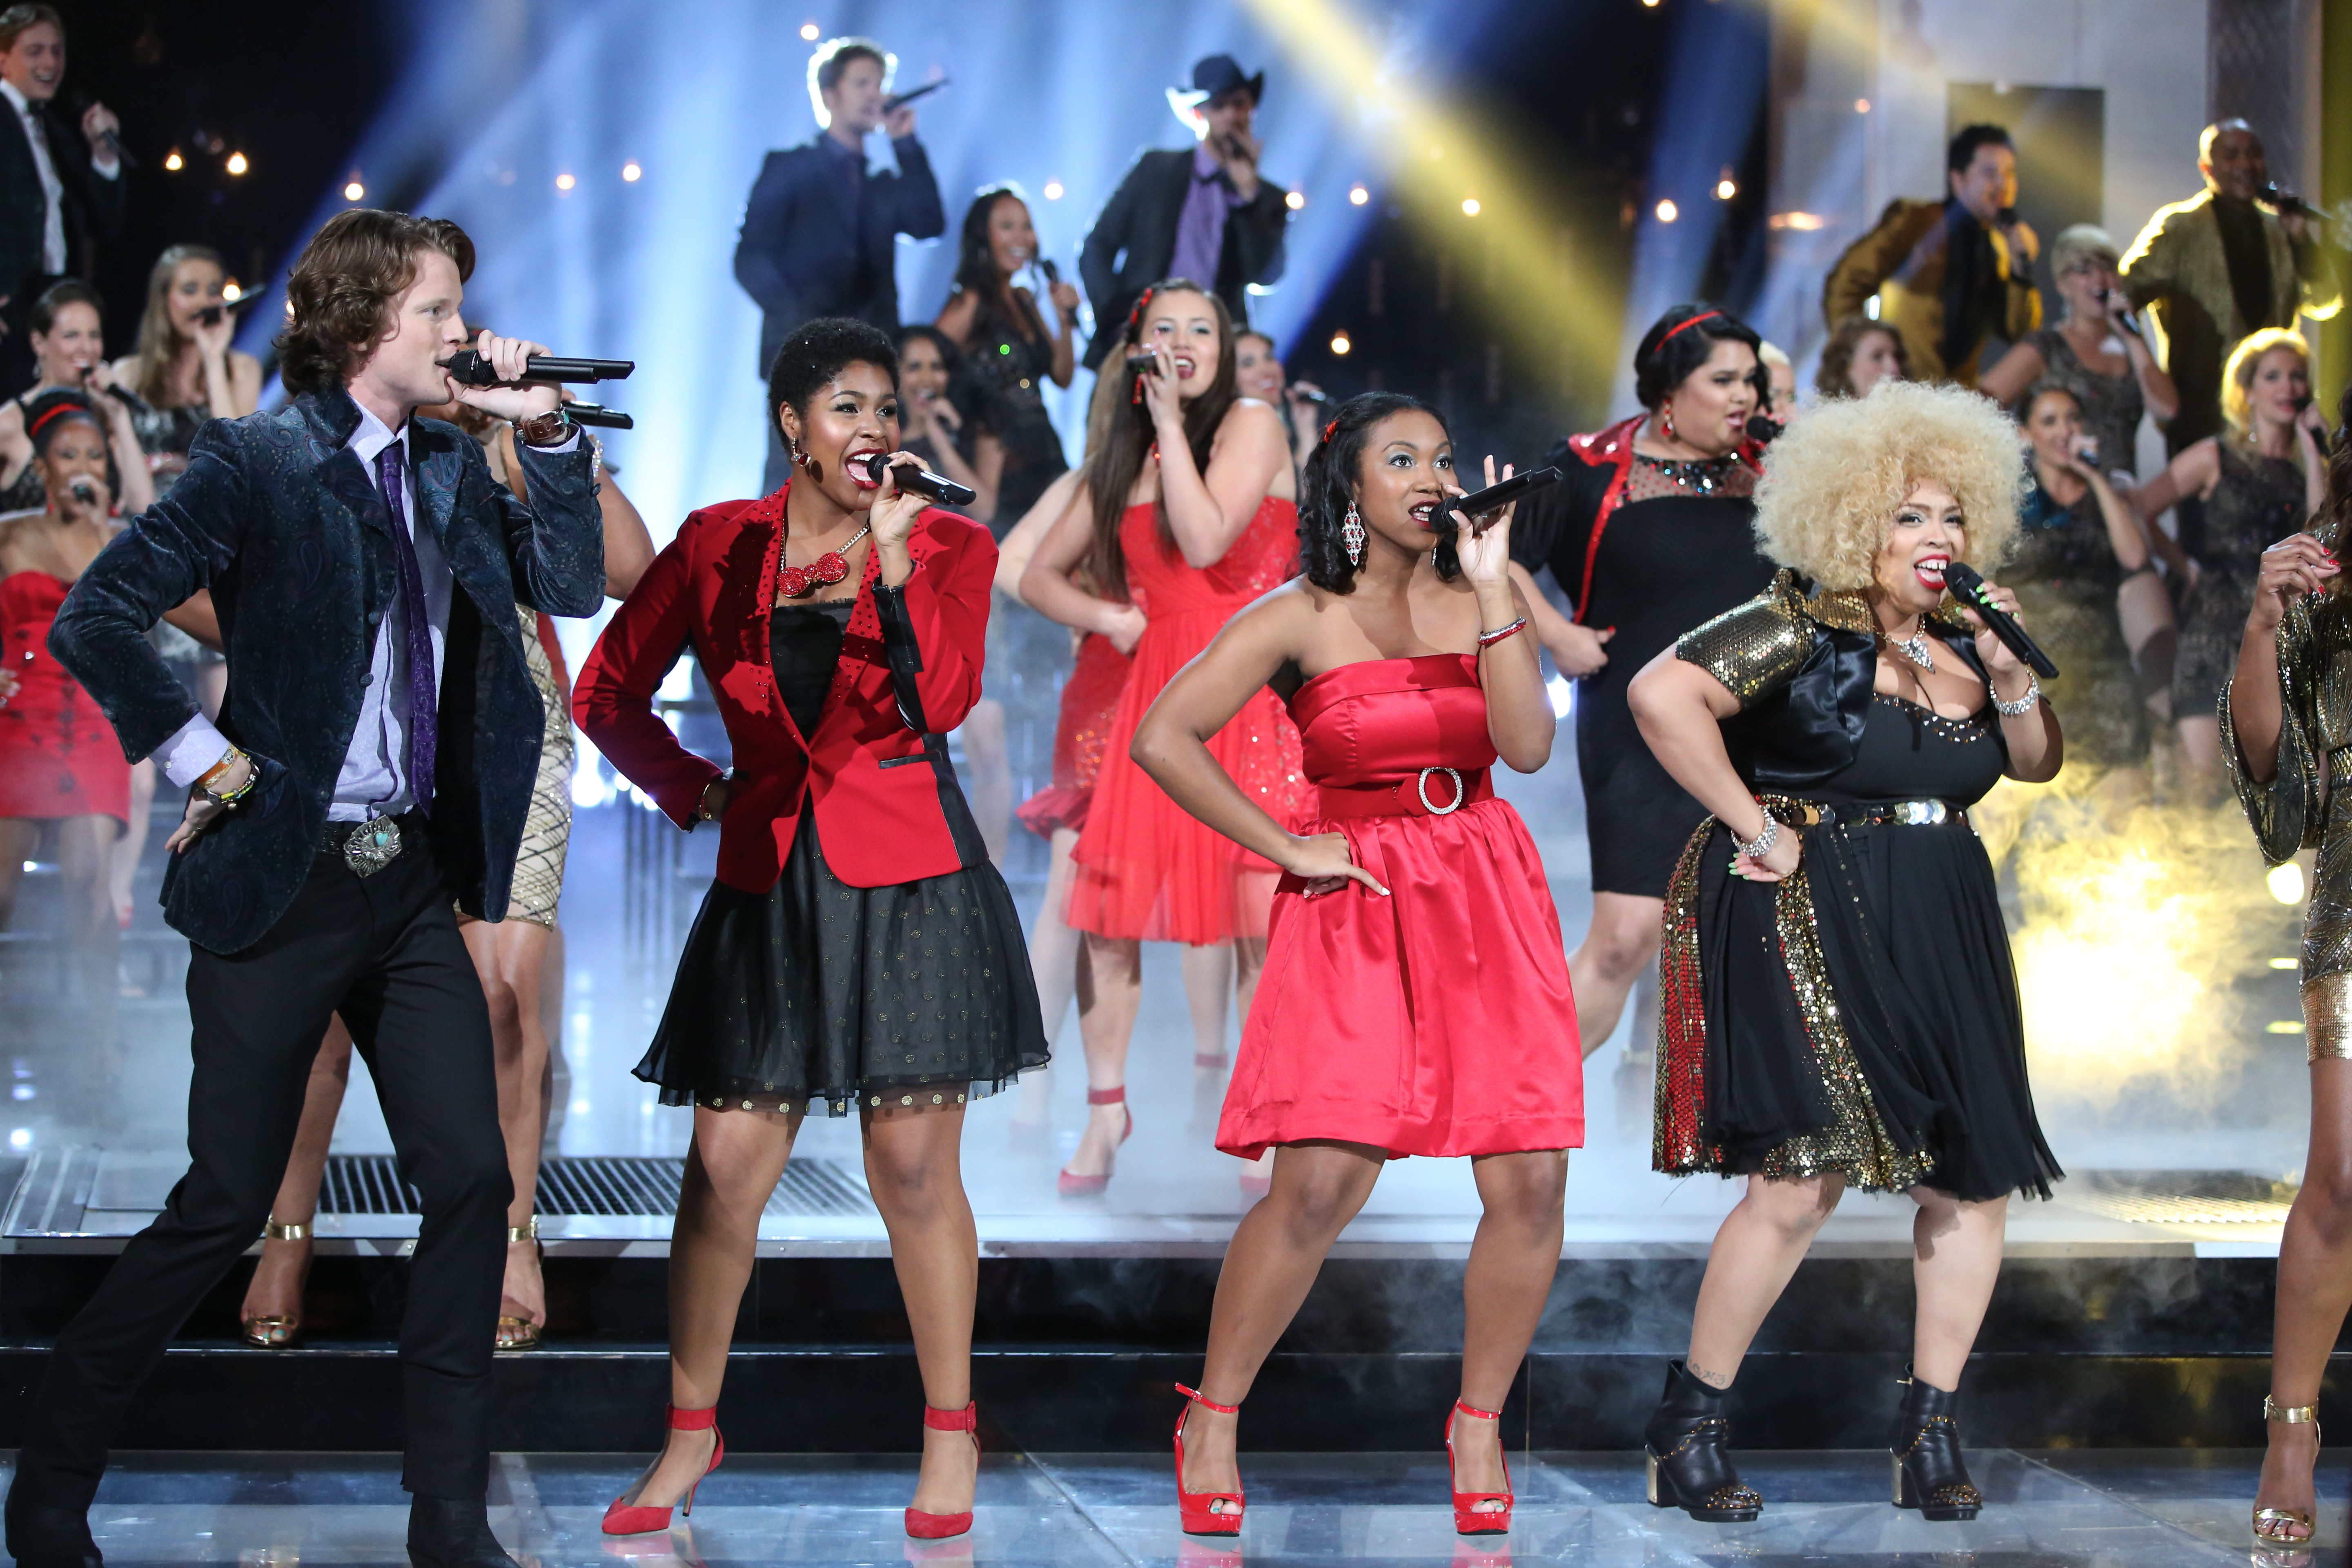 The Sing-Off - Contestants singing opening number of the finale